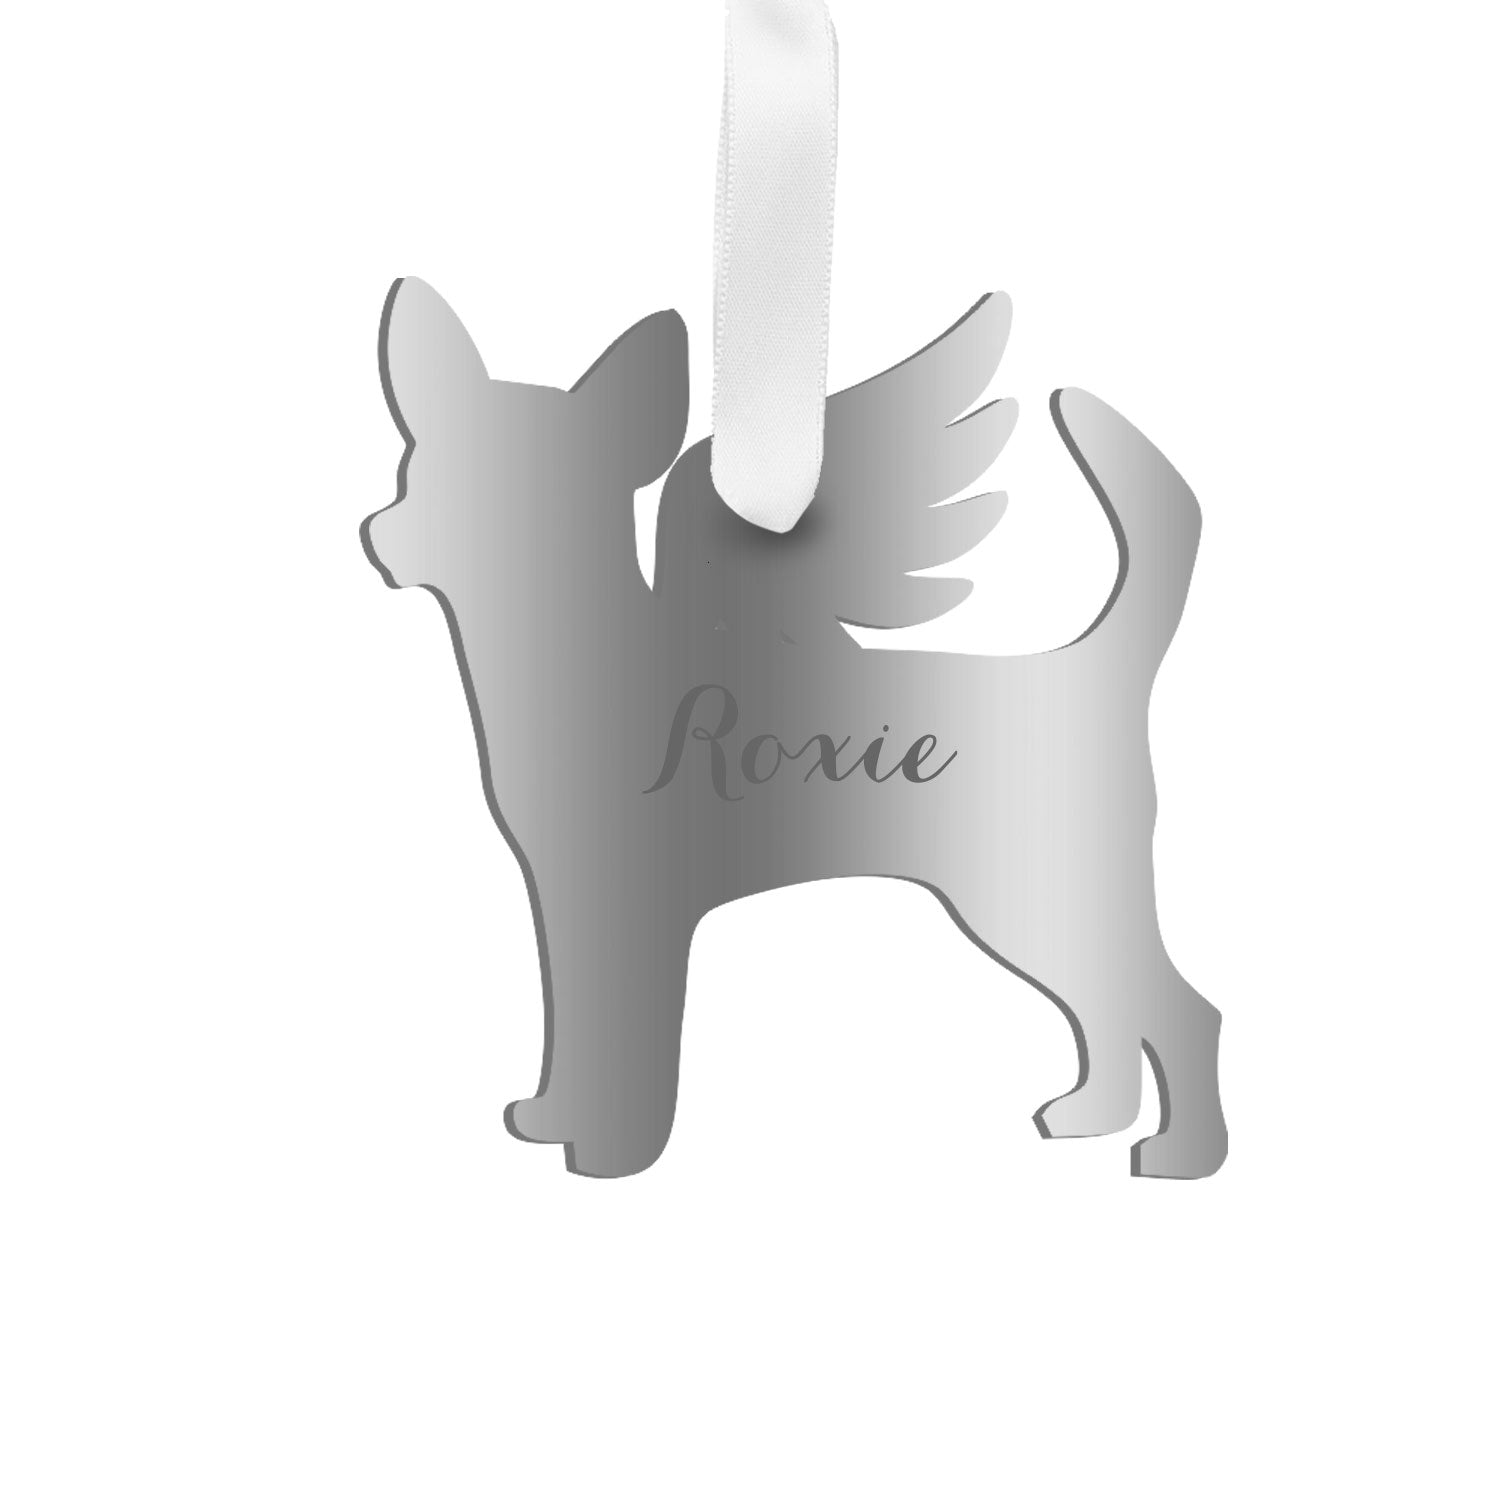 Moon and Lola - Personalized Angel Chihuahua Ornament with wings in mirrored  silver